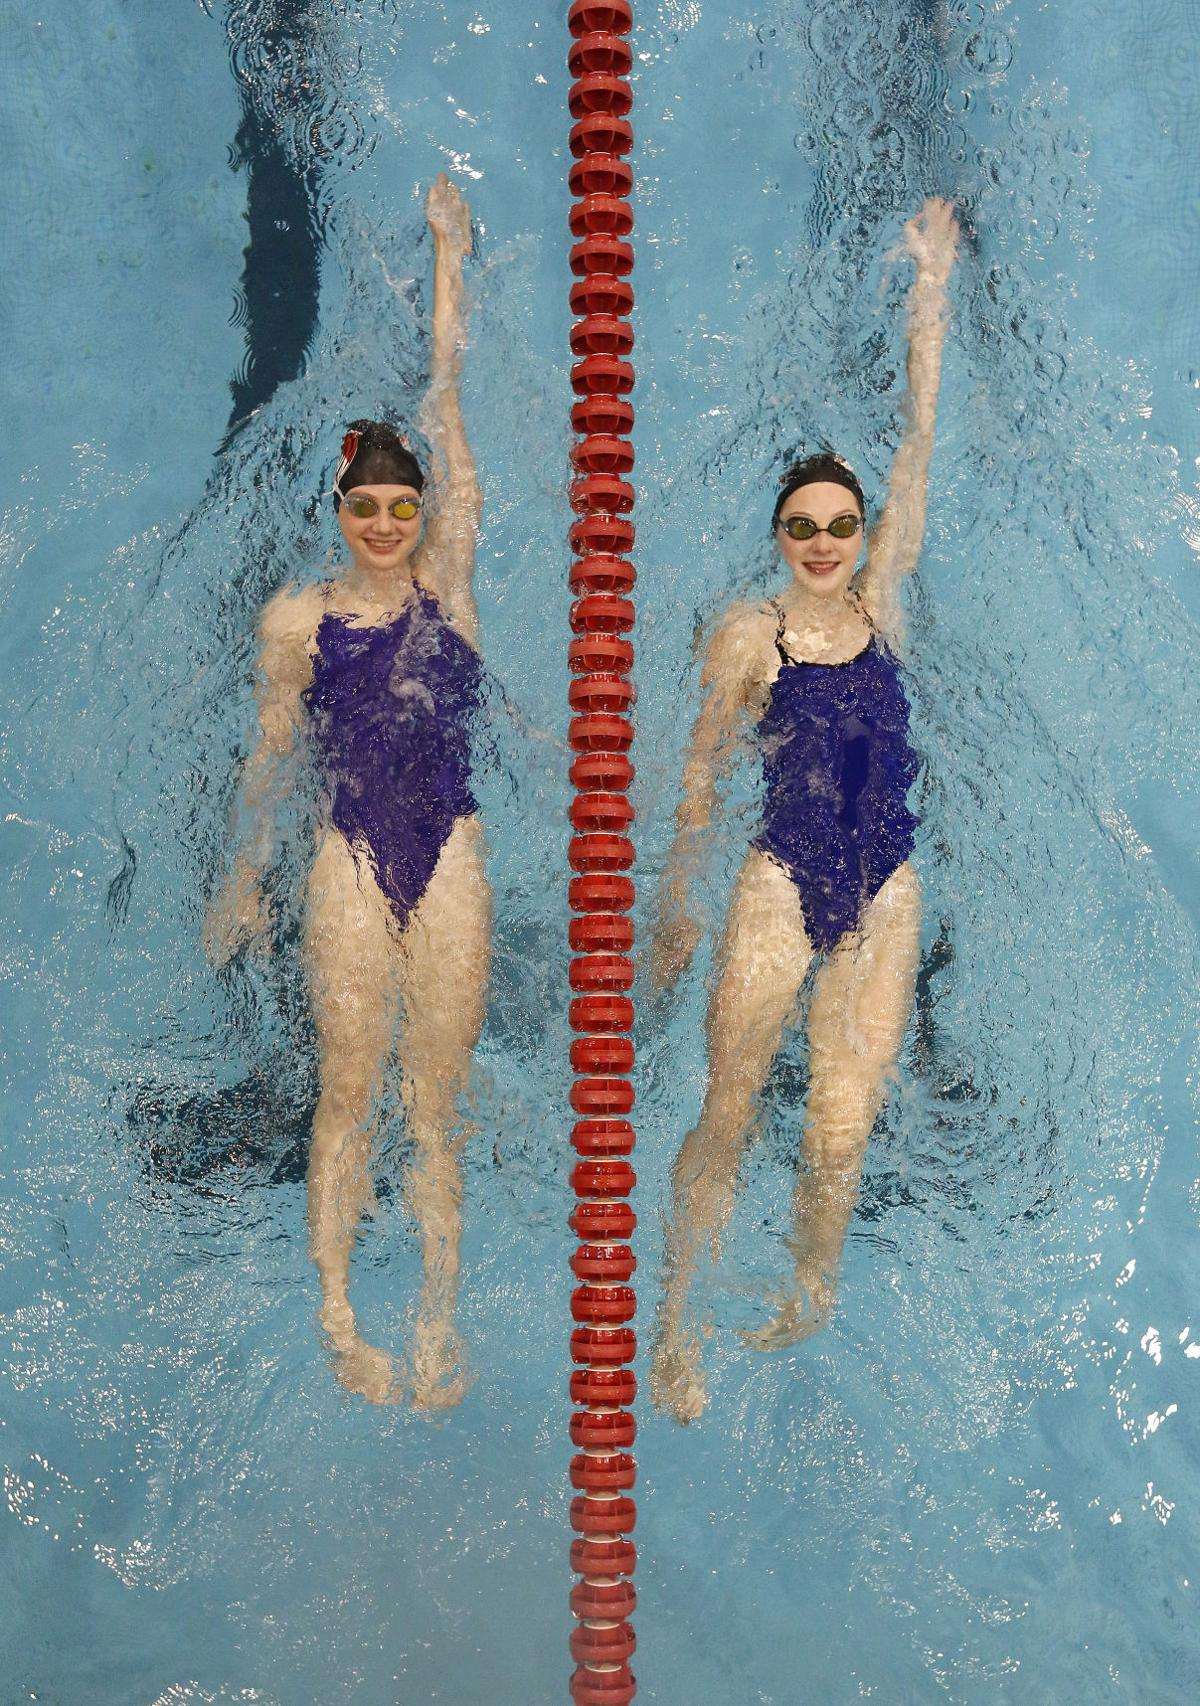 State swimming: Cedar Falls standout Clark looks to pass ...